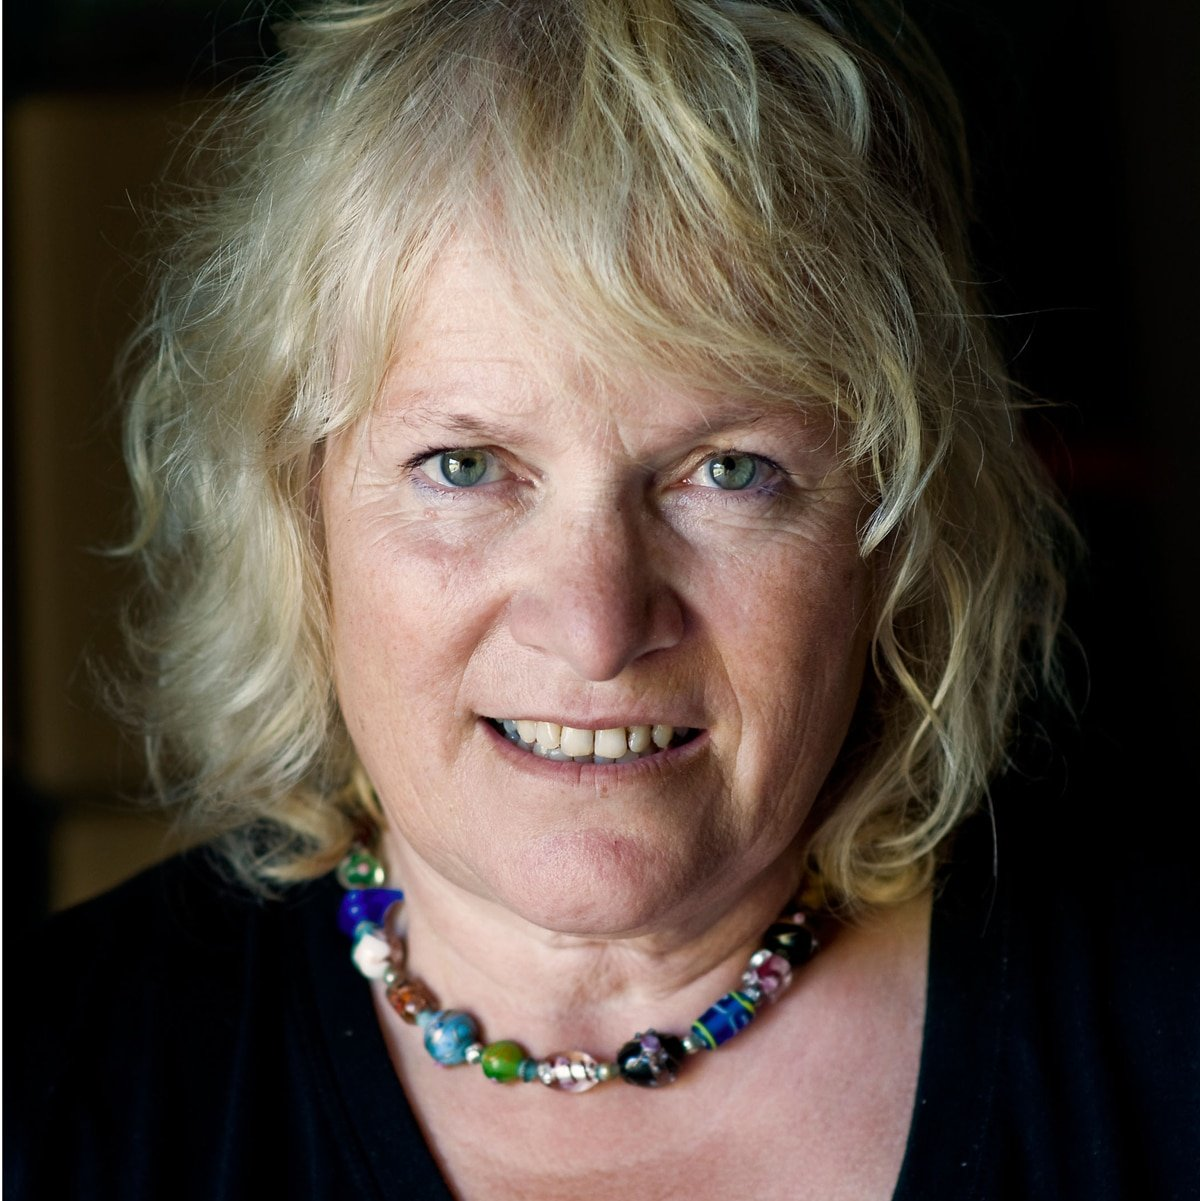 Libby-Purves-TV-radio-broadcaster-today-columnist-The-Times-at-Great-British-Speakers